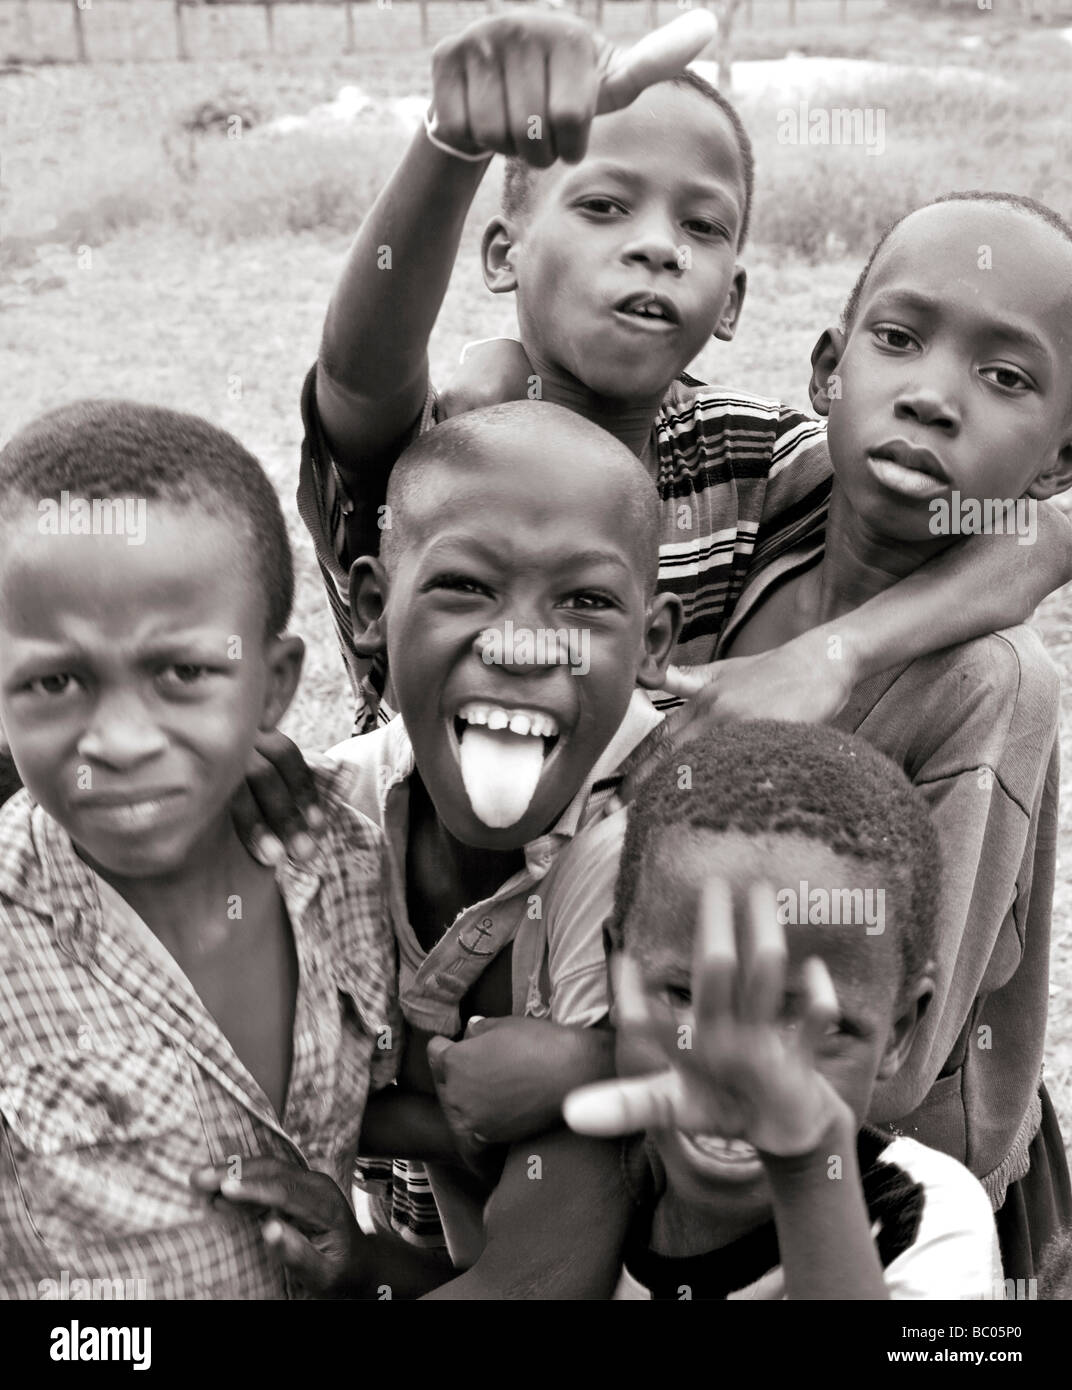 Black and white photograph of gambian african boys pulling faces and messing about for the camera